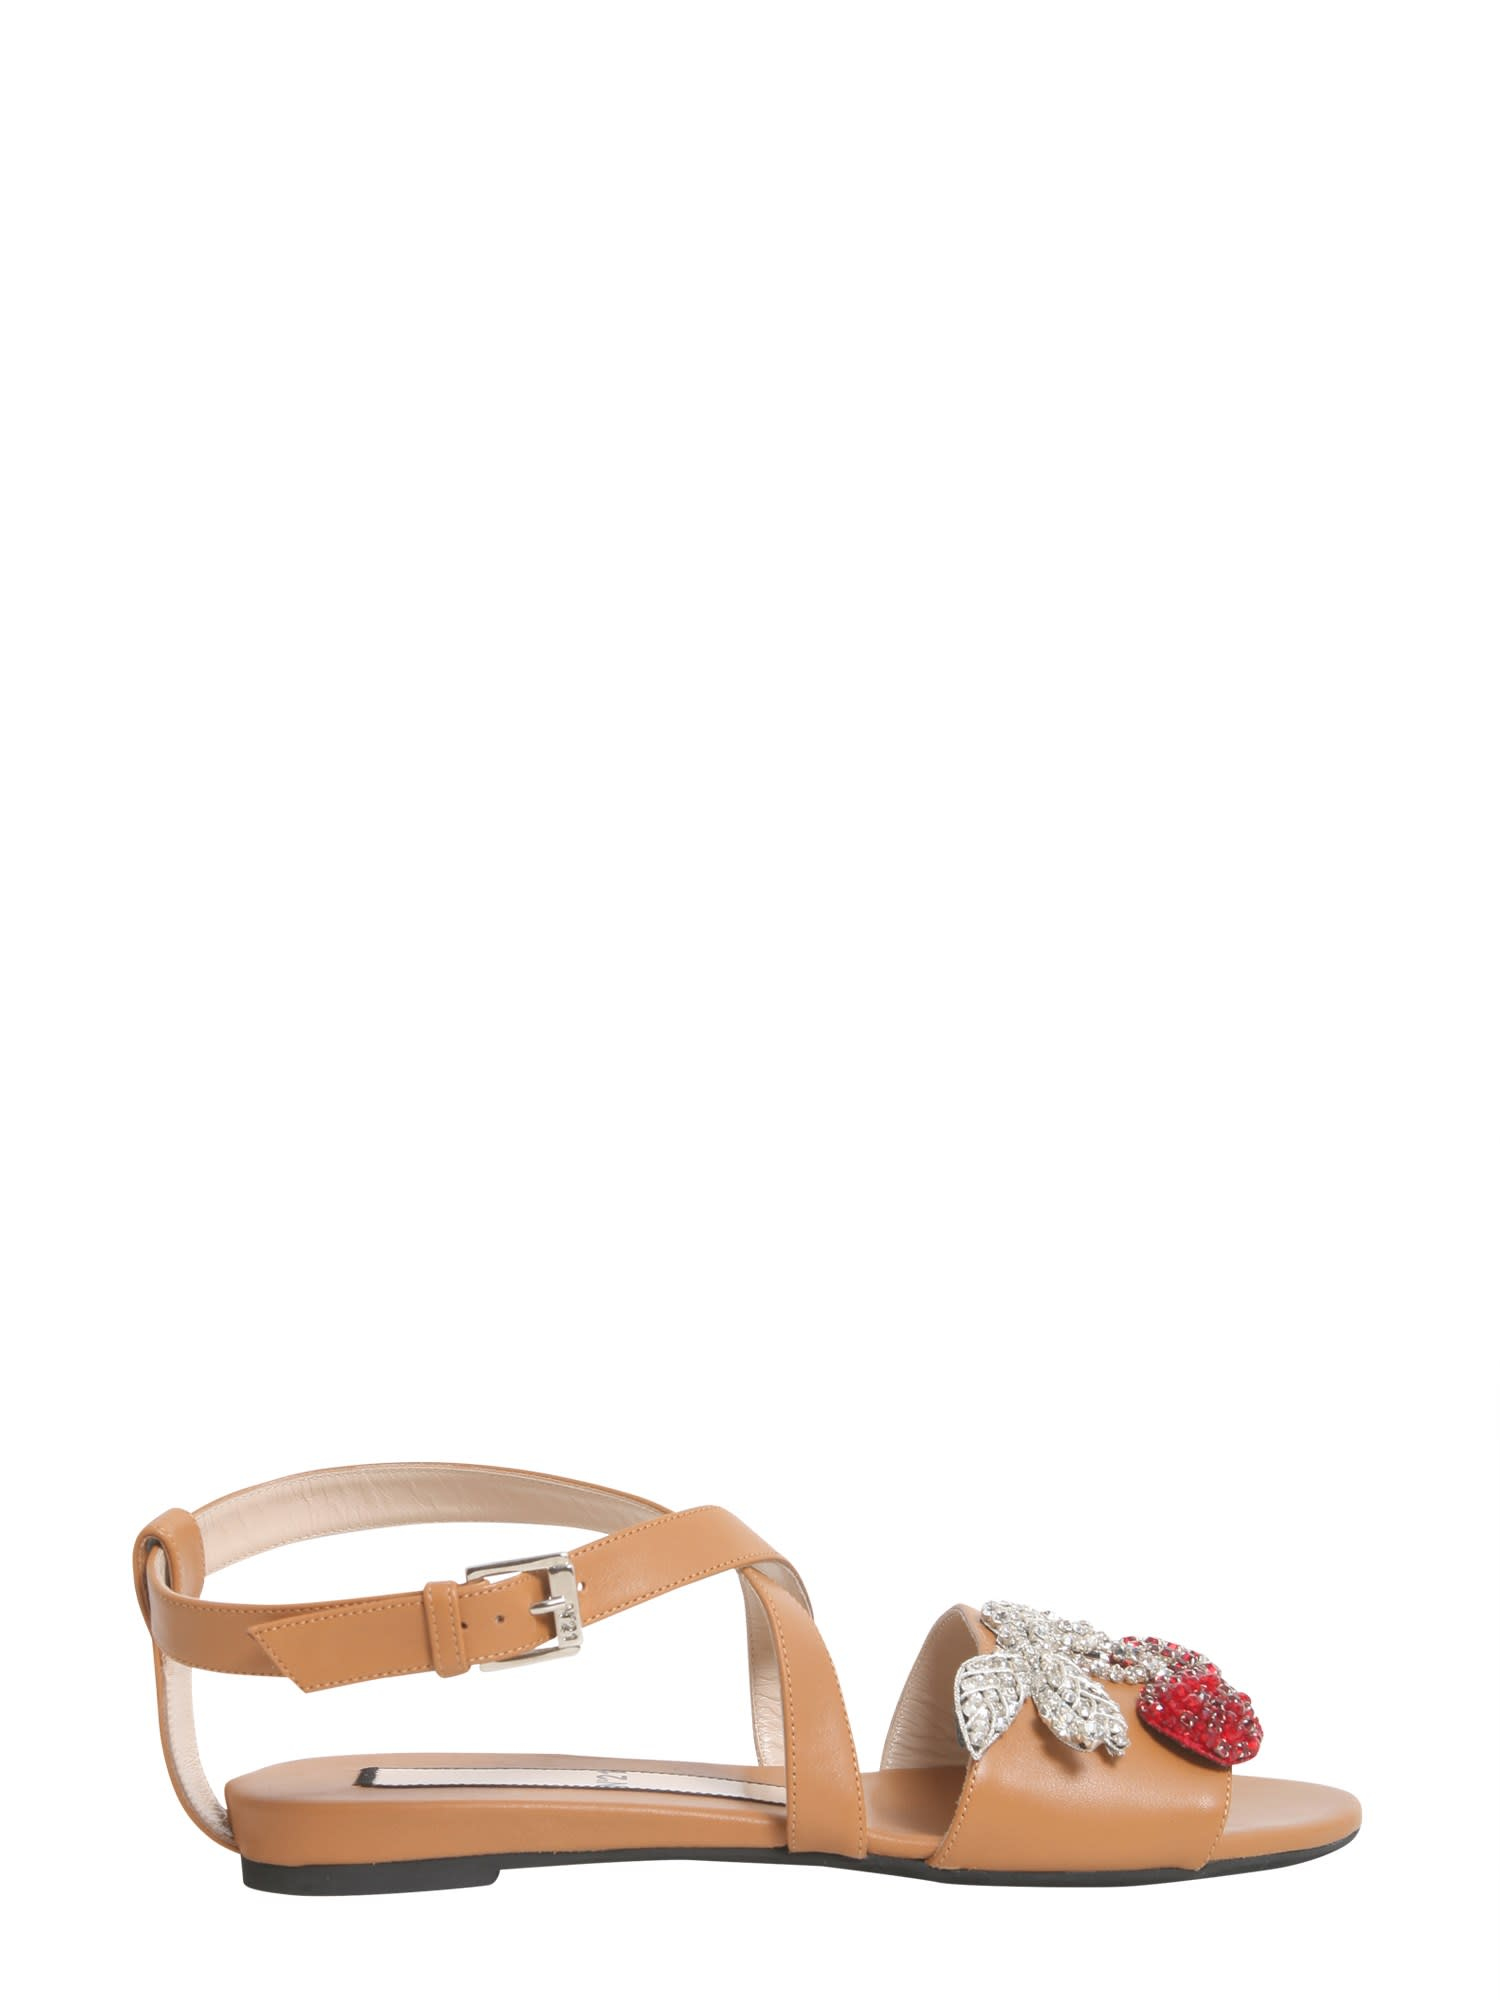 Buy N.21 Cherry Pin Sandals online, shop N.21 shoes with free shipping